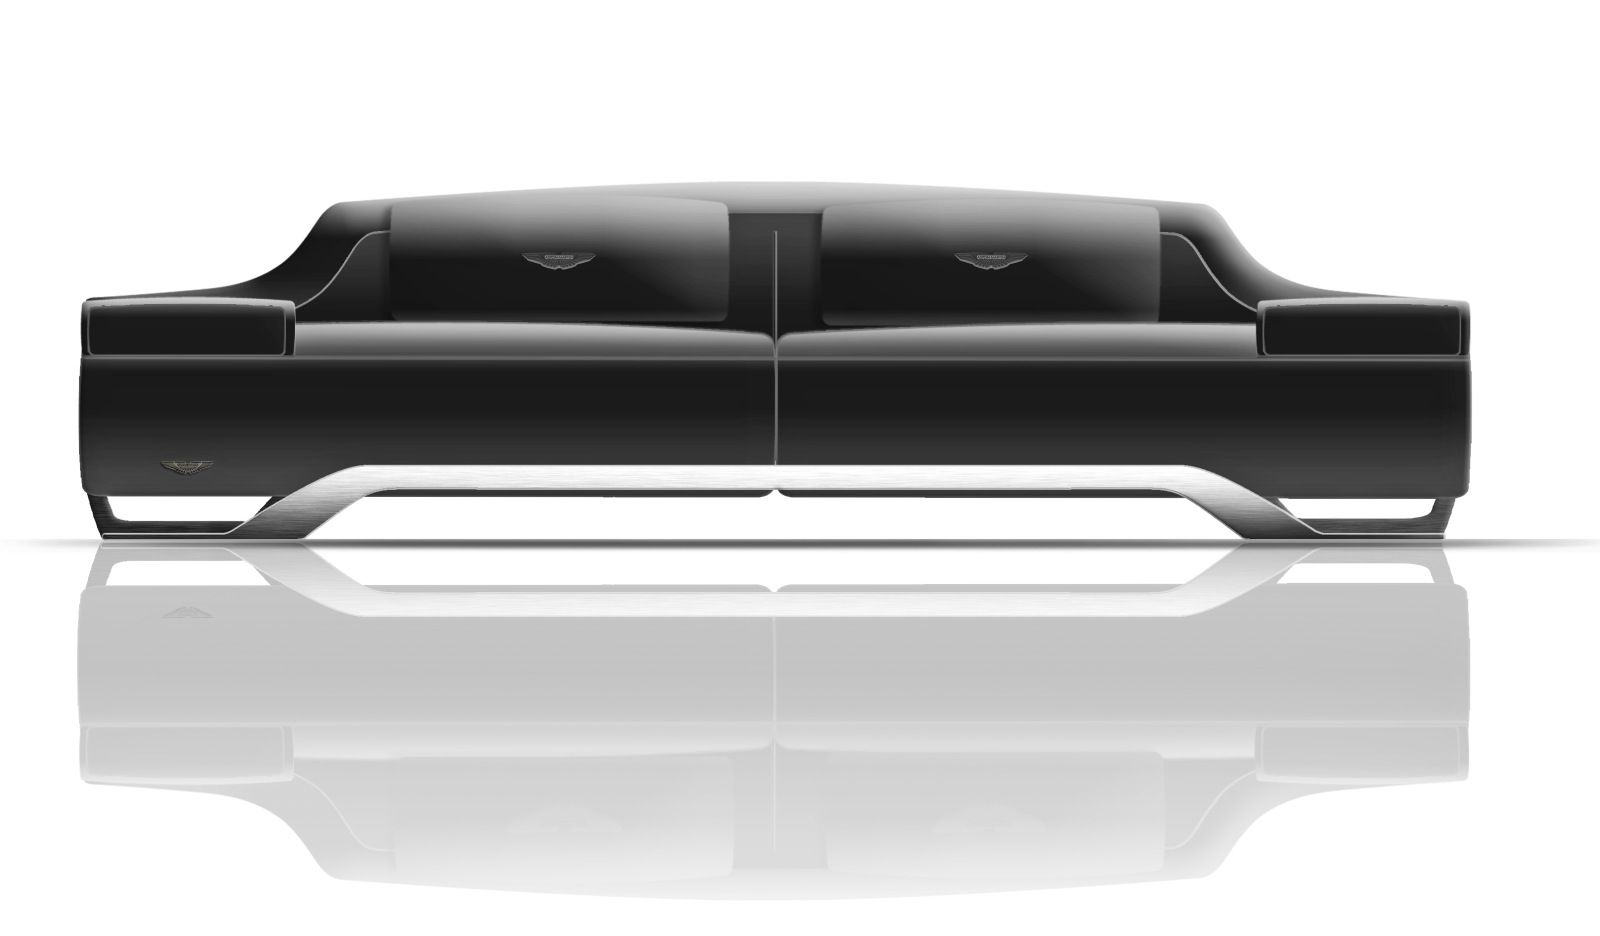 Aston Martin-inspired sofa